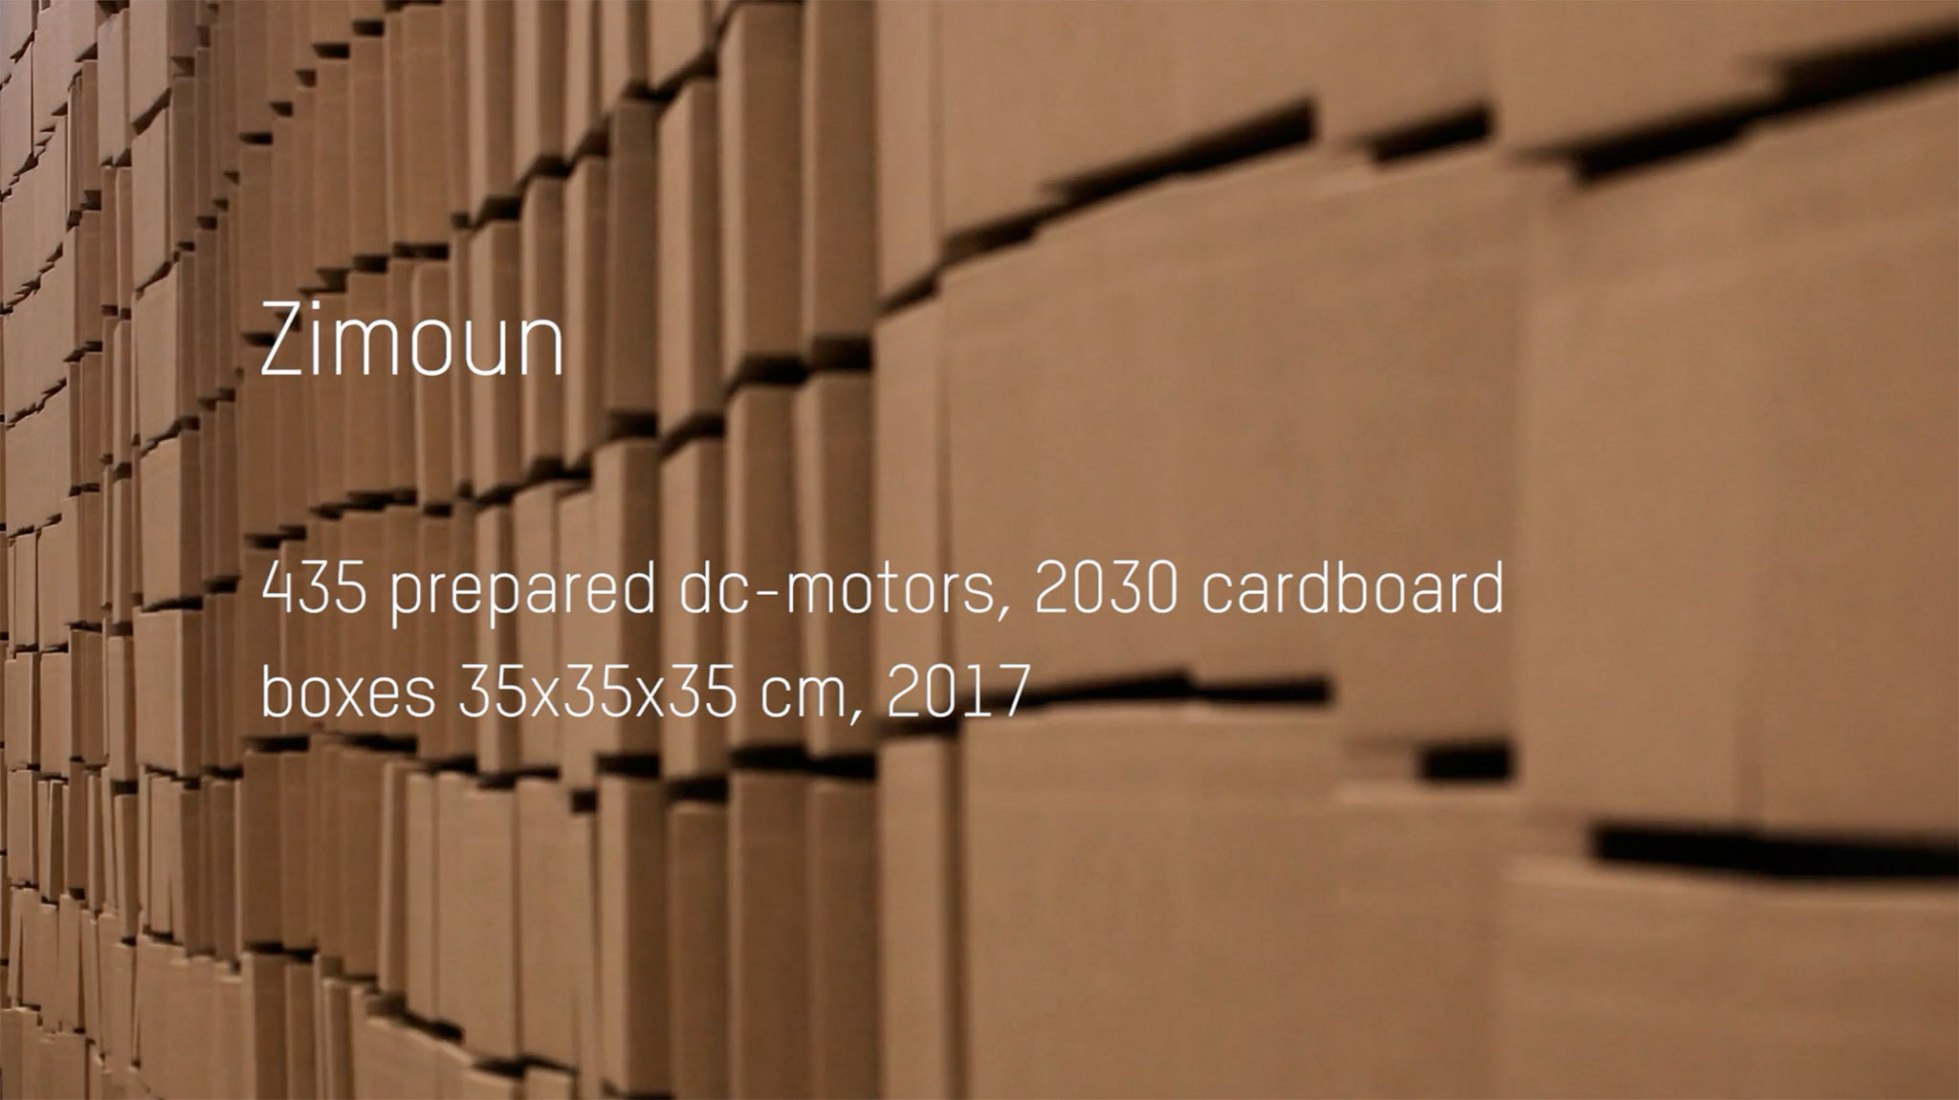 435 prepared dc-motors, 2030 cardboard boxes 35x35x35cm by Zimoun. Image courtesy of Zimoun